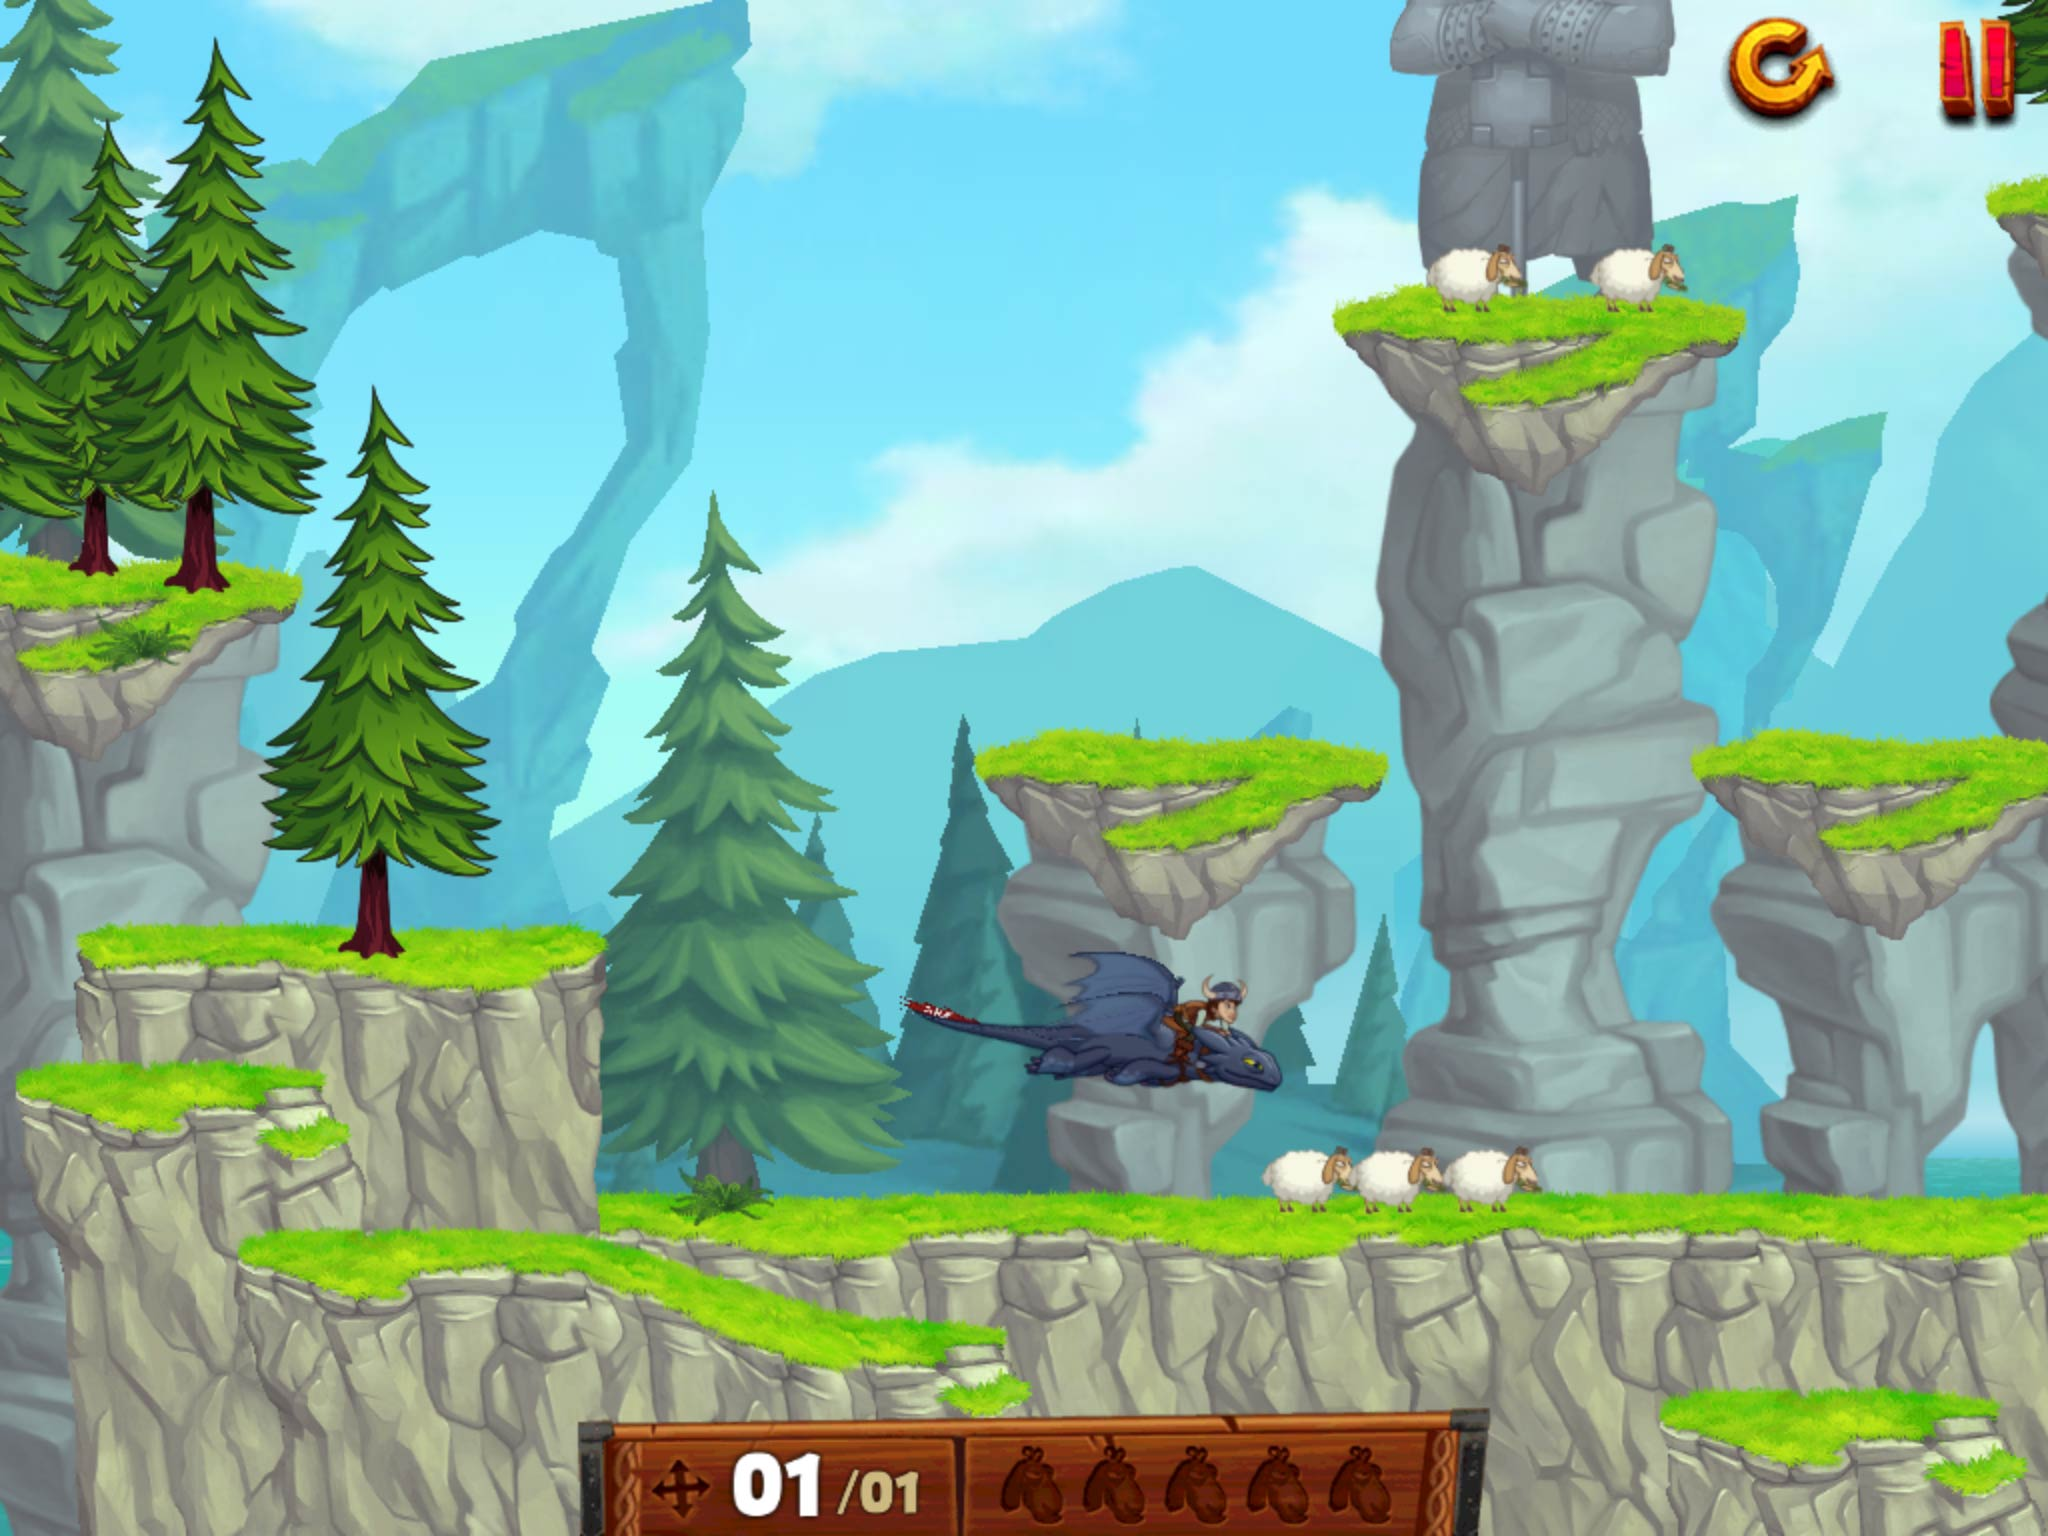 If You Loved How To Train Your Dragon, You Won't Want To Miss DreamWorks Dragons: TapDragonDrop